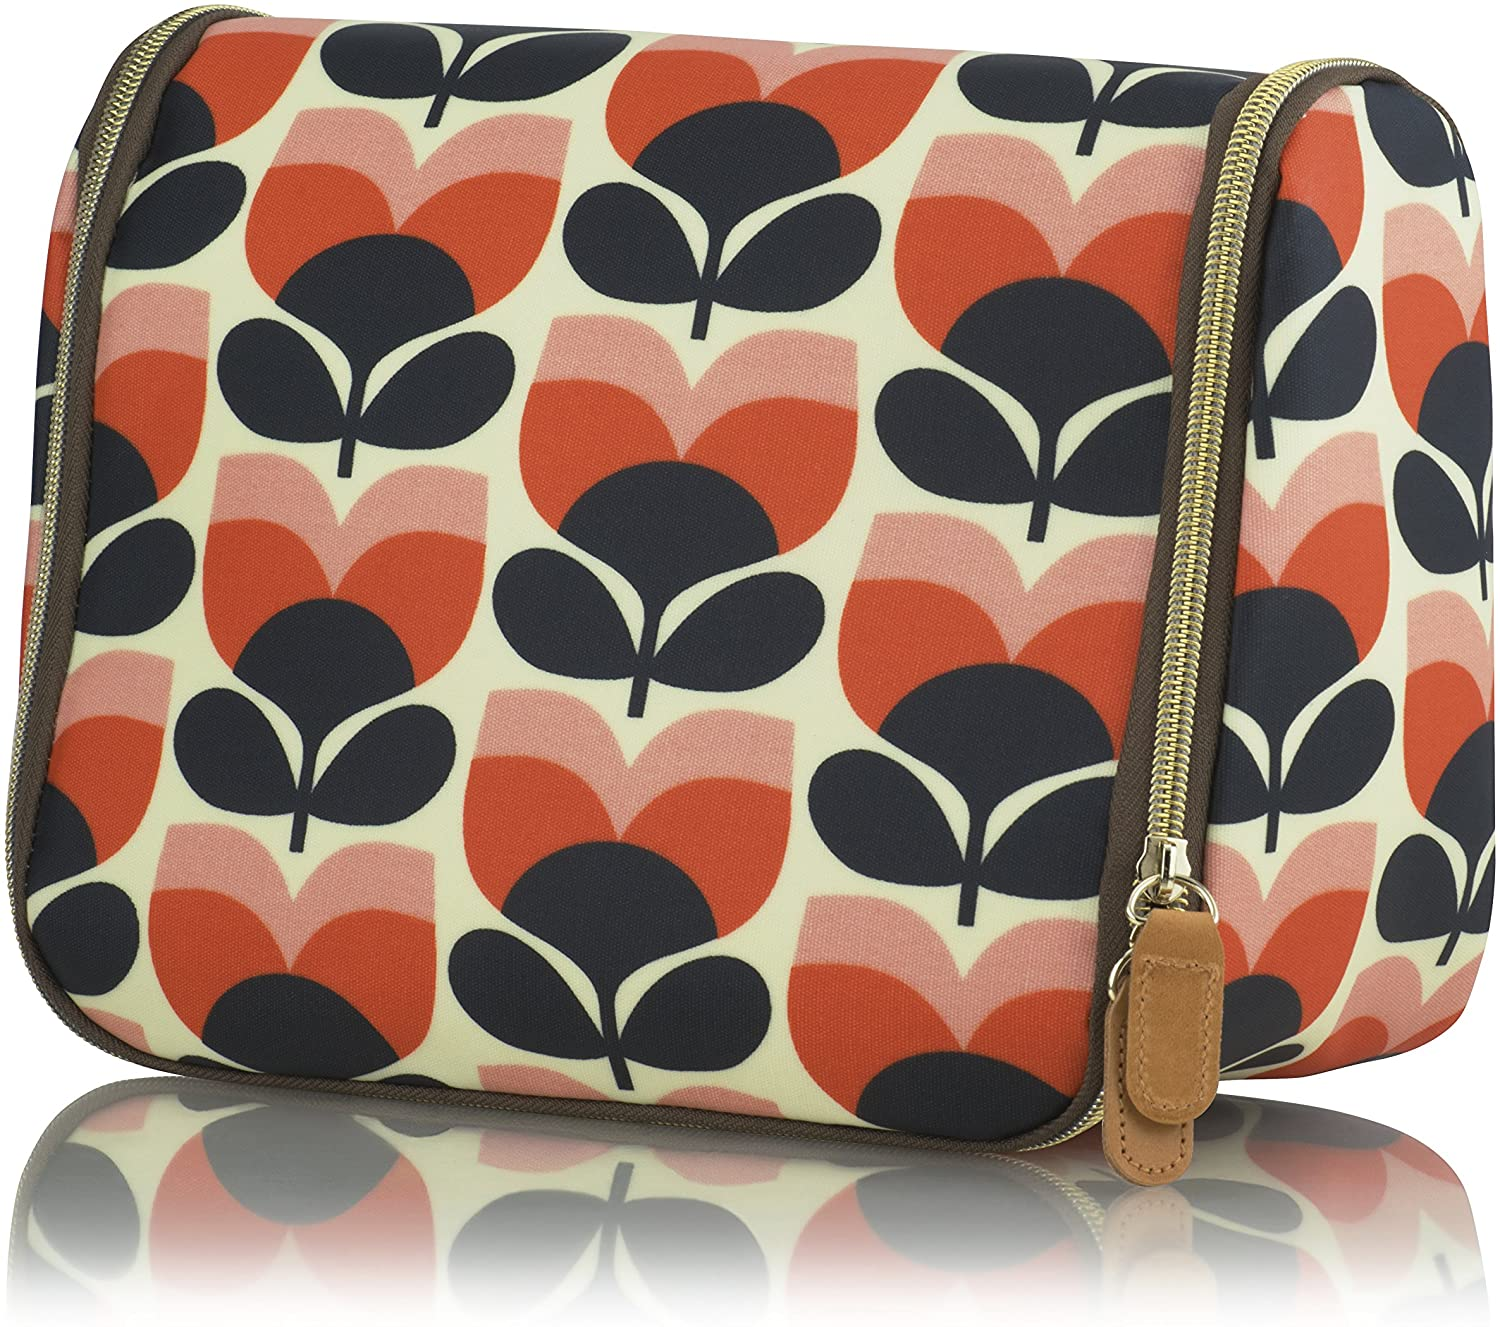 Orla Kiely Flower Stripe Hanging Wash Bag - Persimmon - BouChic